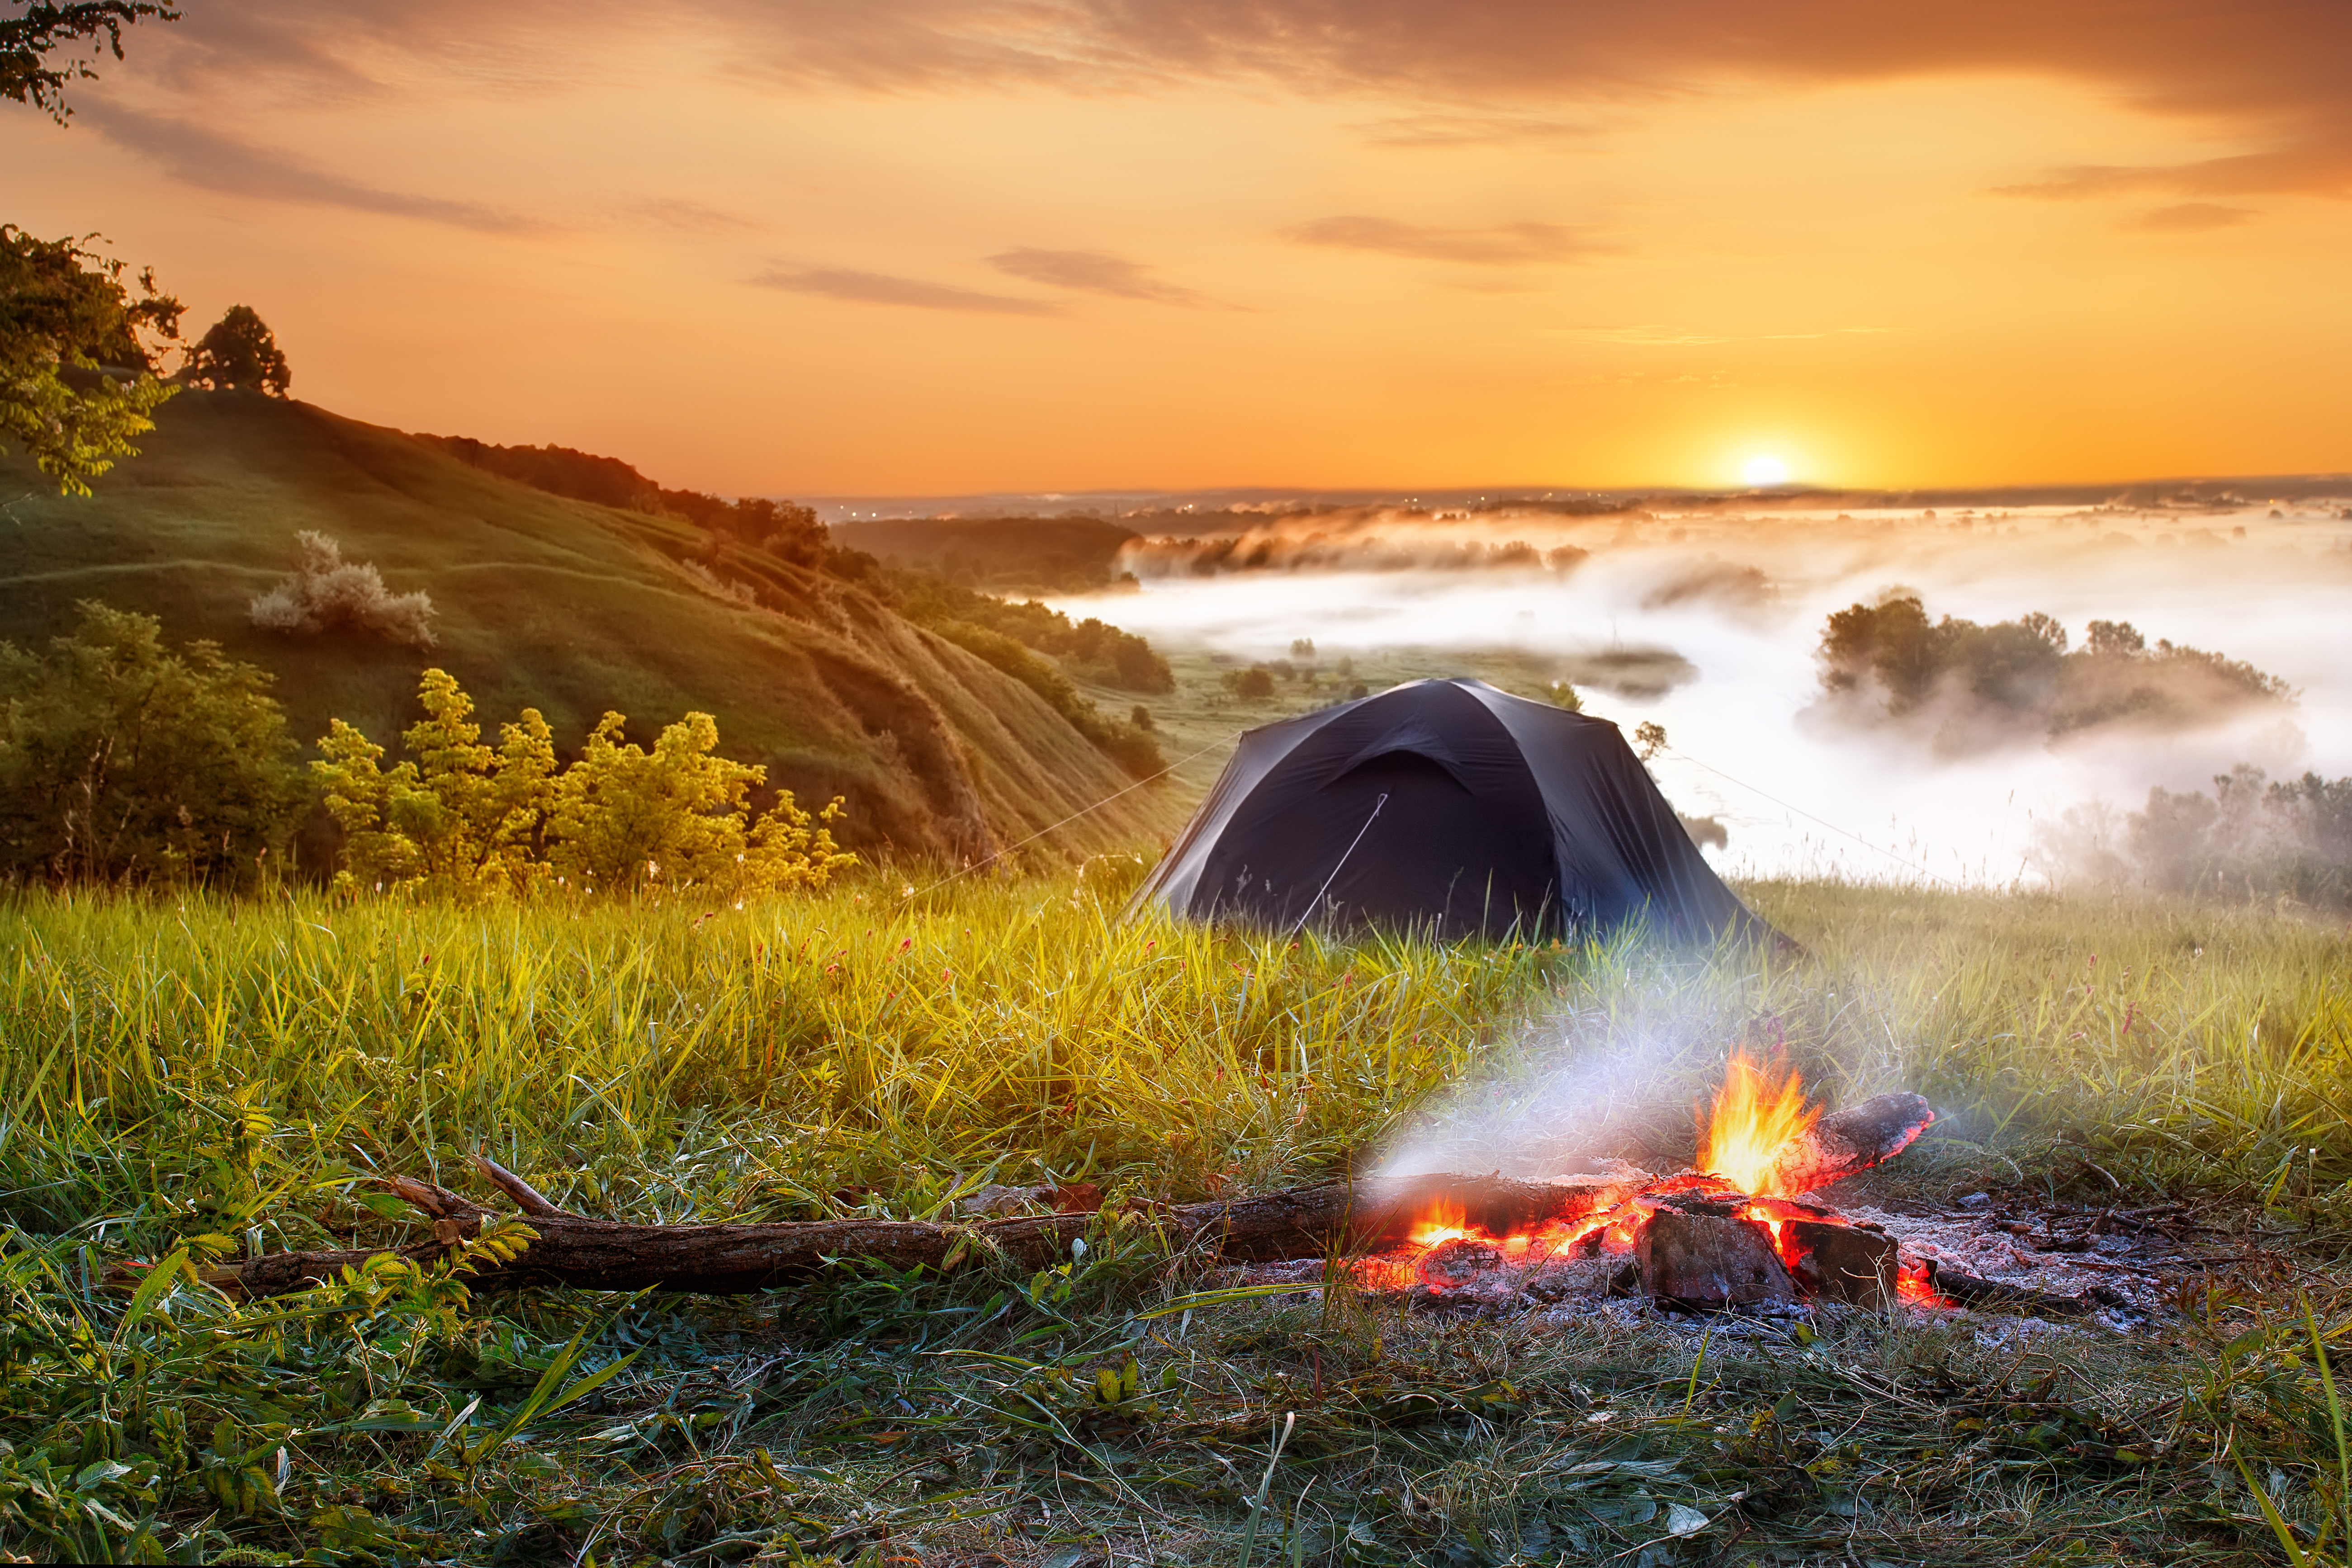 Camping Sites Along the Ohio River Byway | USA Today